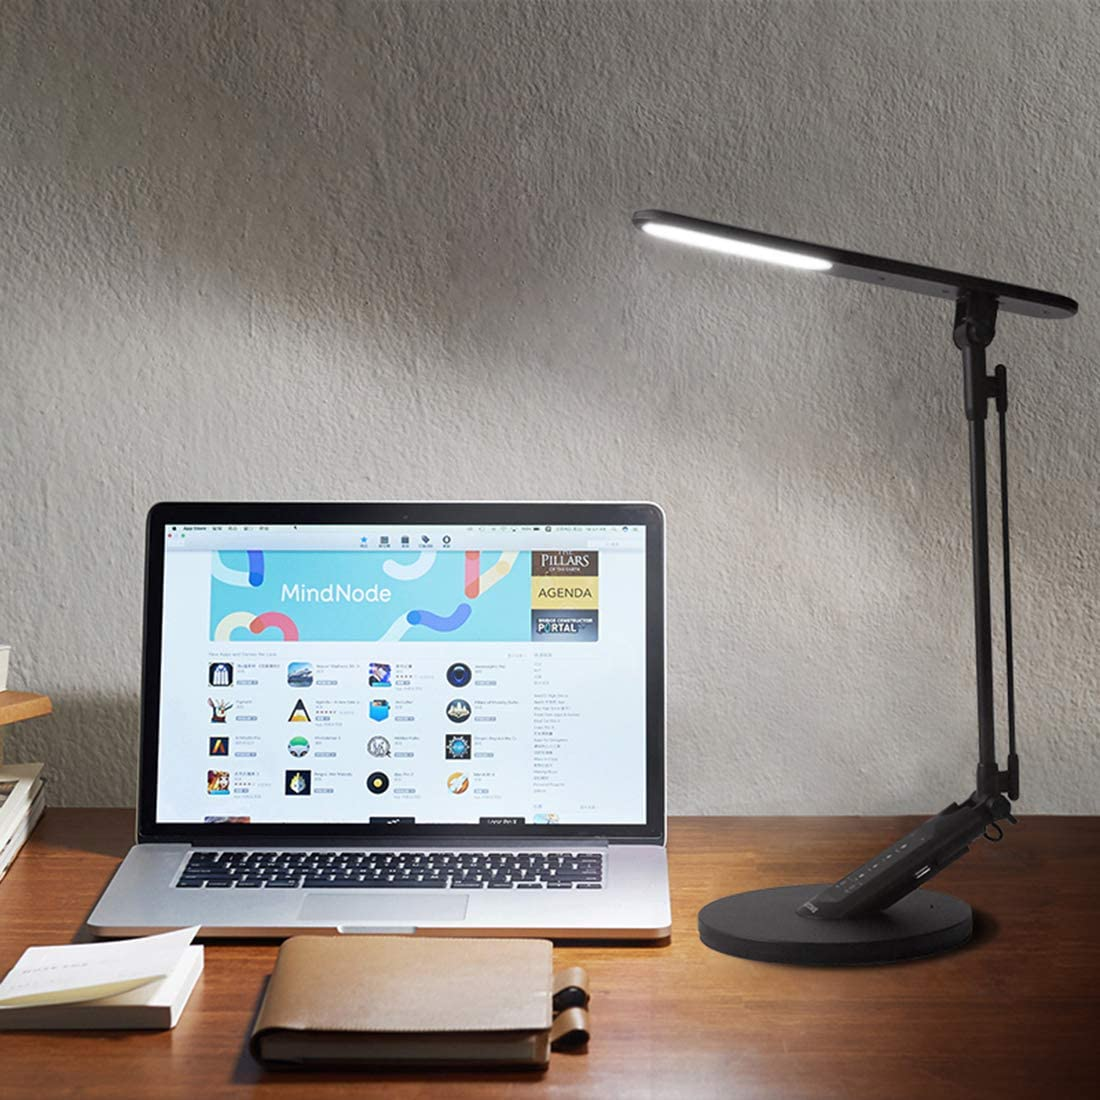 HDTIME Desk LED Lamp with USB Charging Port Touch-Sensitive Control with 1-Hour Timing Function,4 Lighting Modes with 7 Brightness Levels 36PCS LEDs(Black): Home Improvement